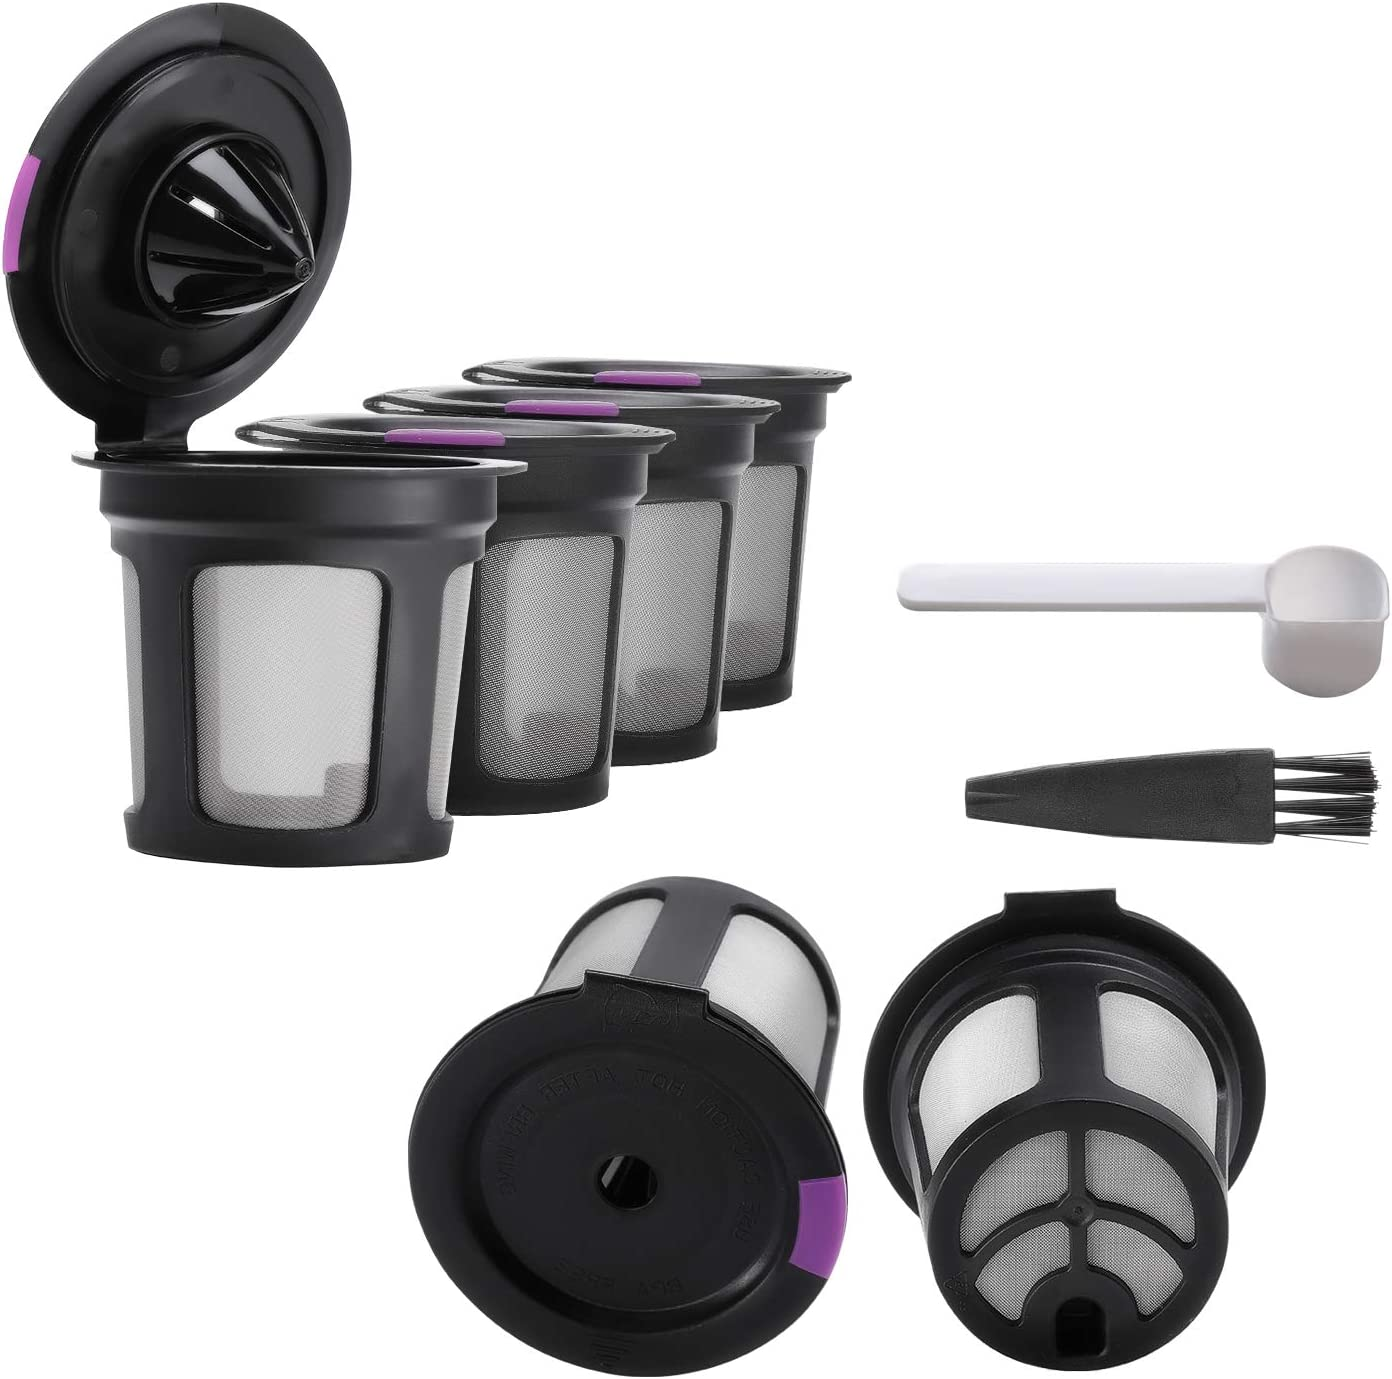 Reusable K Cups Coffee Filters Compatible with Keurig 2.0 & 1.0 Brewers – 6 Pcs Reusable Coffee Filters with Brush and Spoon Stainless Steel Mesh - Universal Refillable K Cup Keurig Filters (Black)